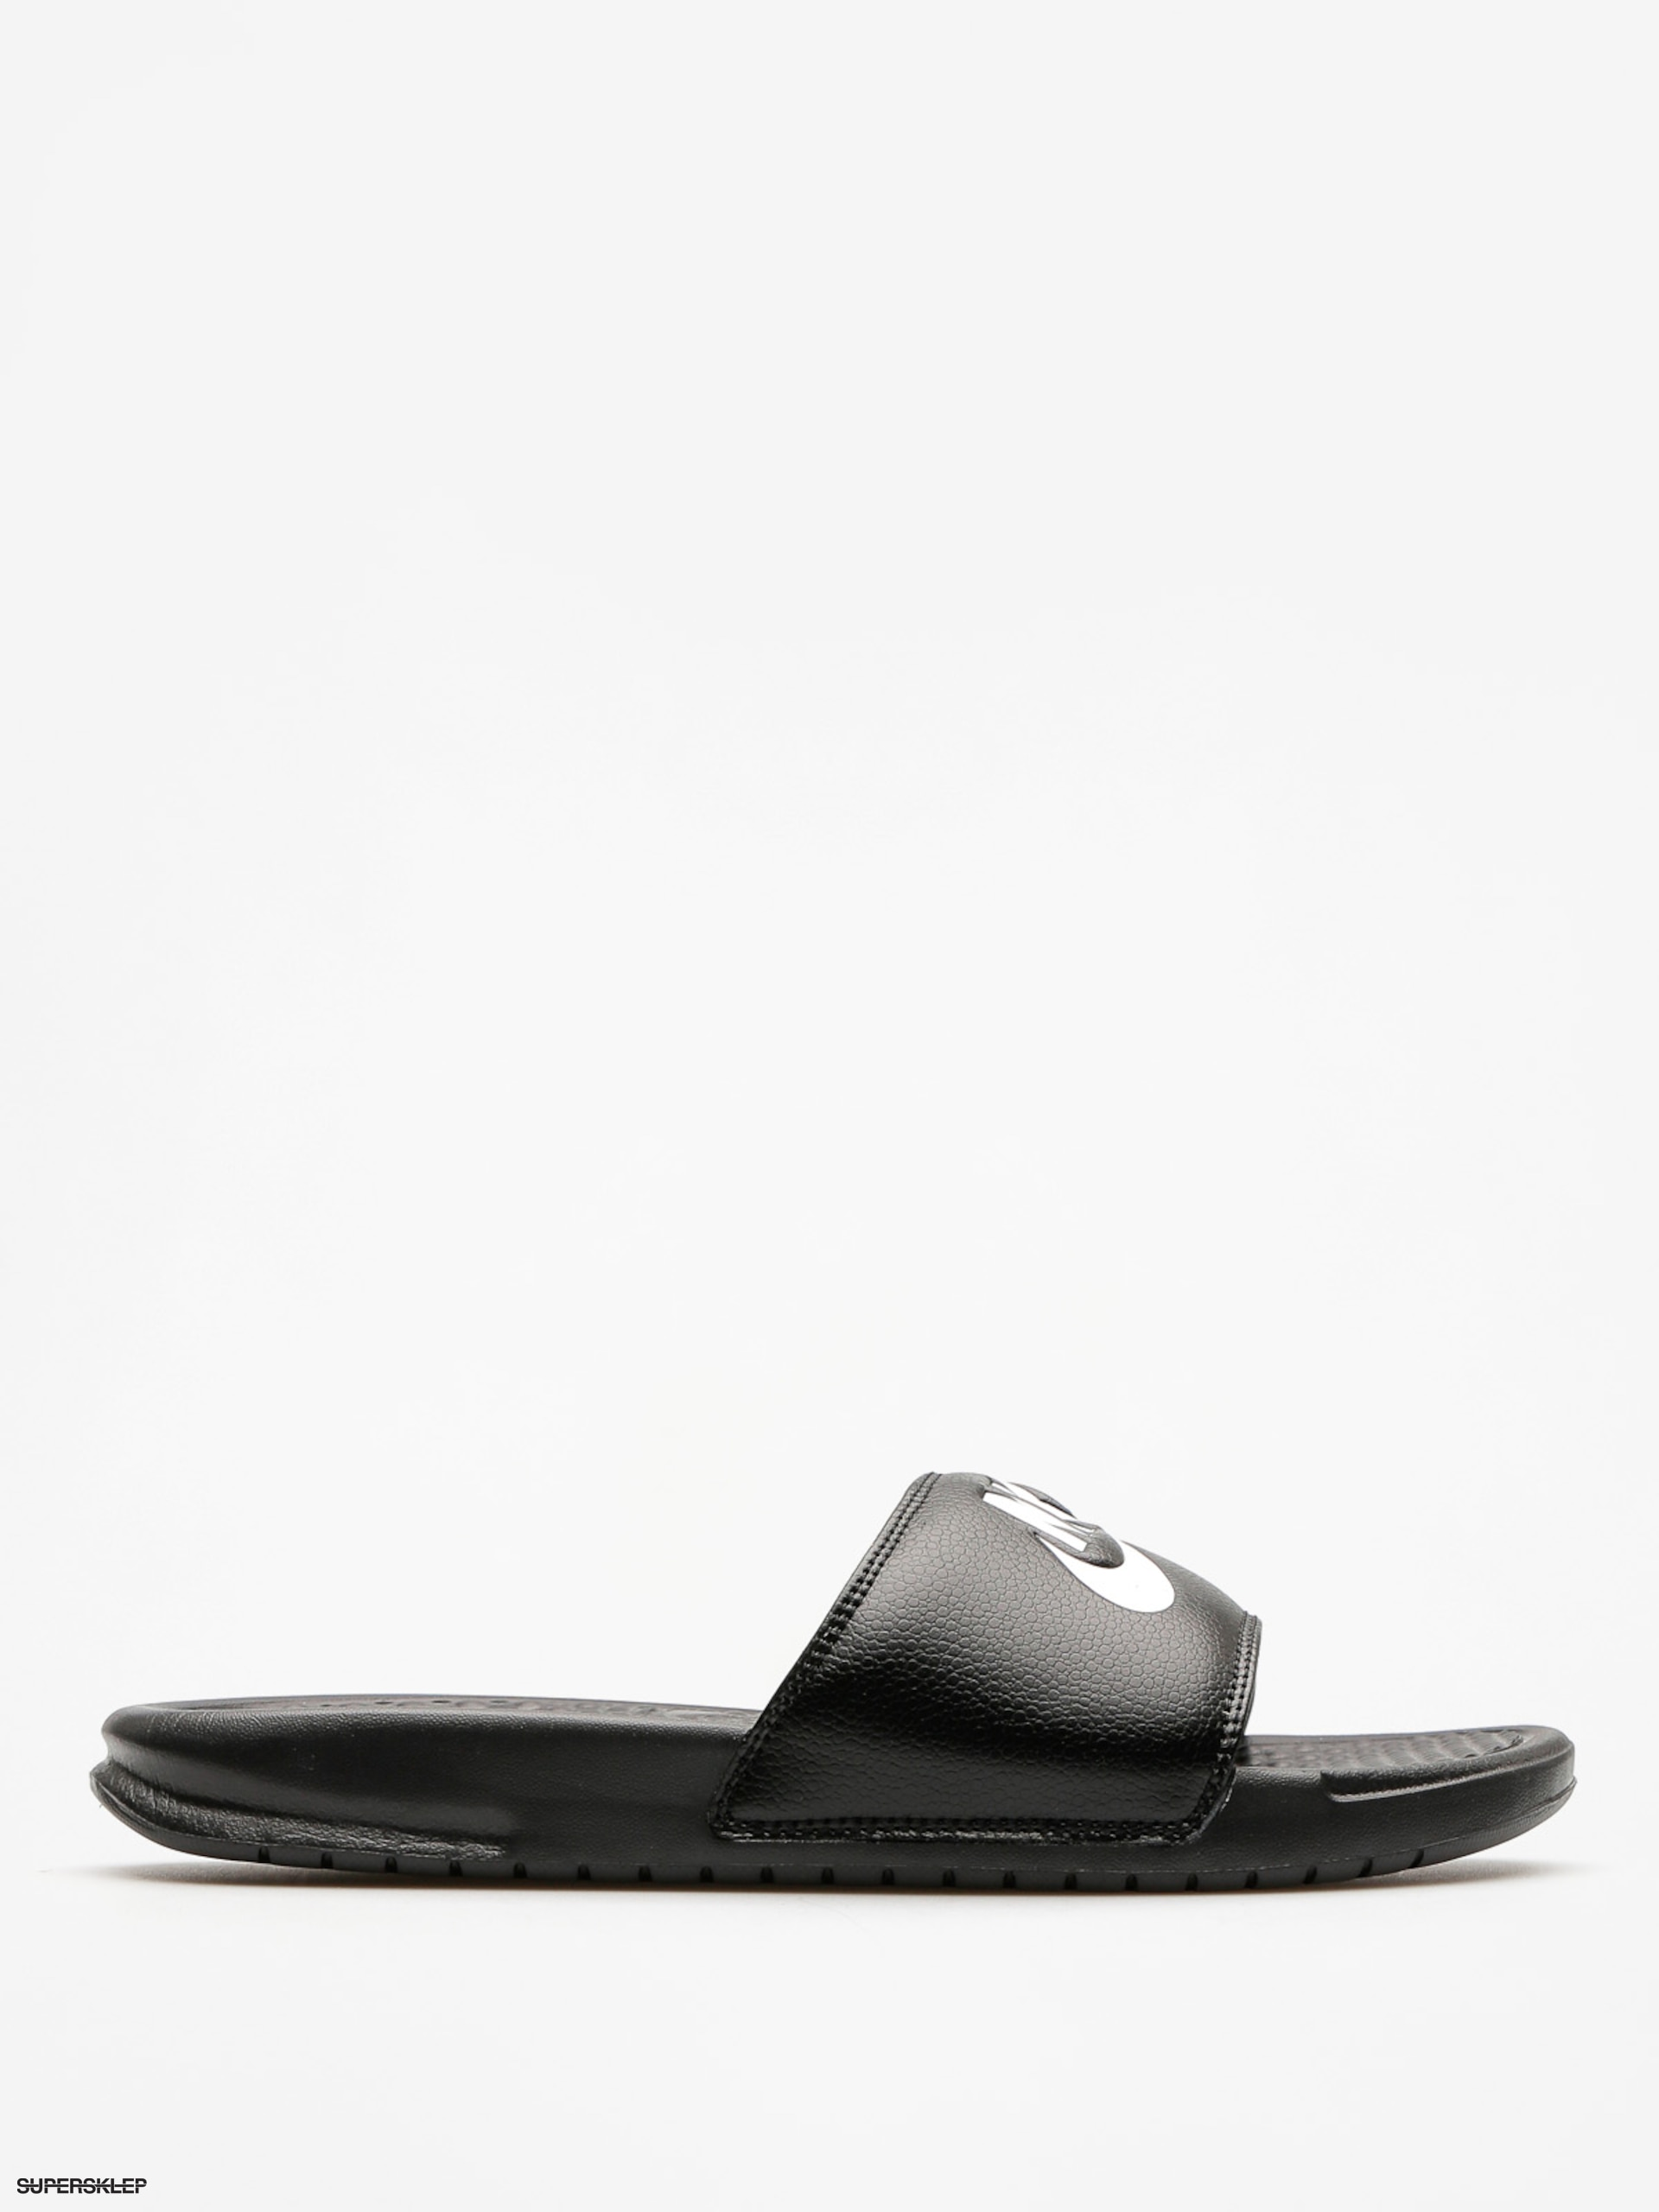 Klapki Nike Benassi Just Do It Sandal